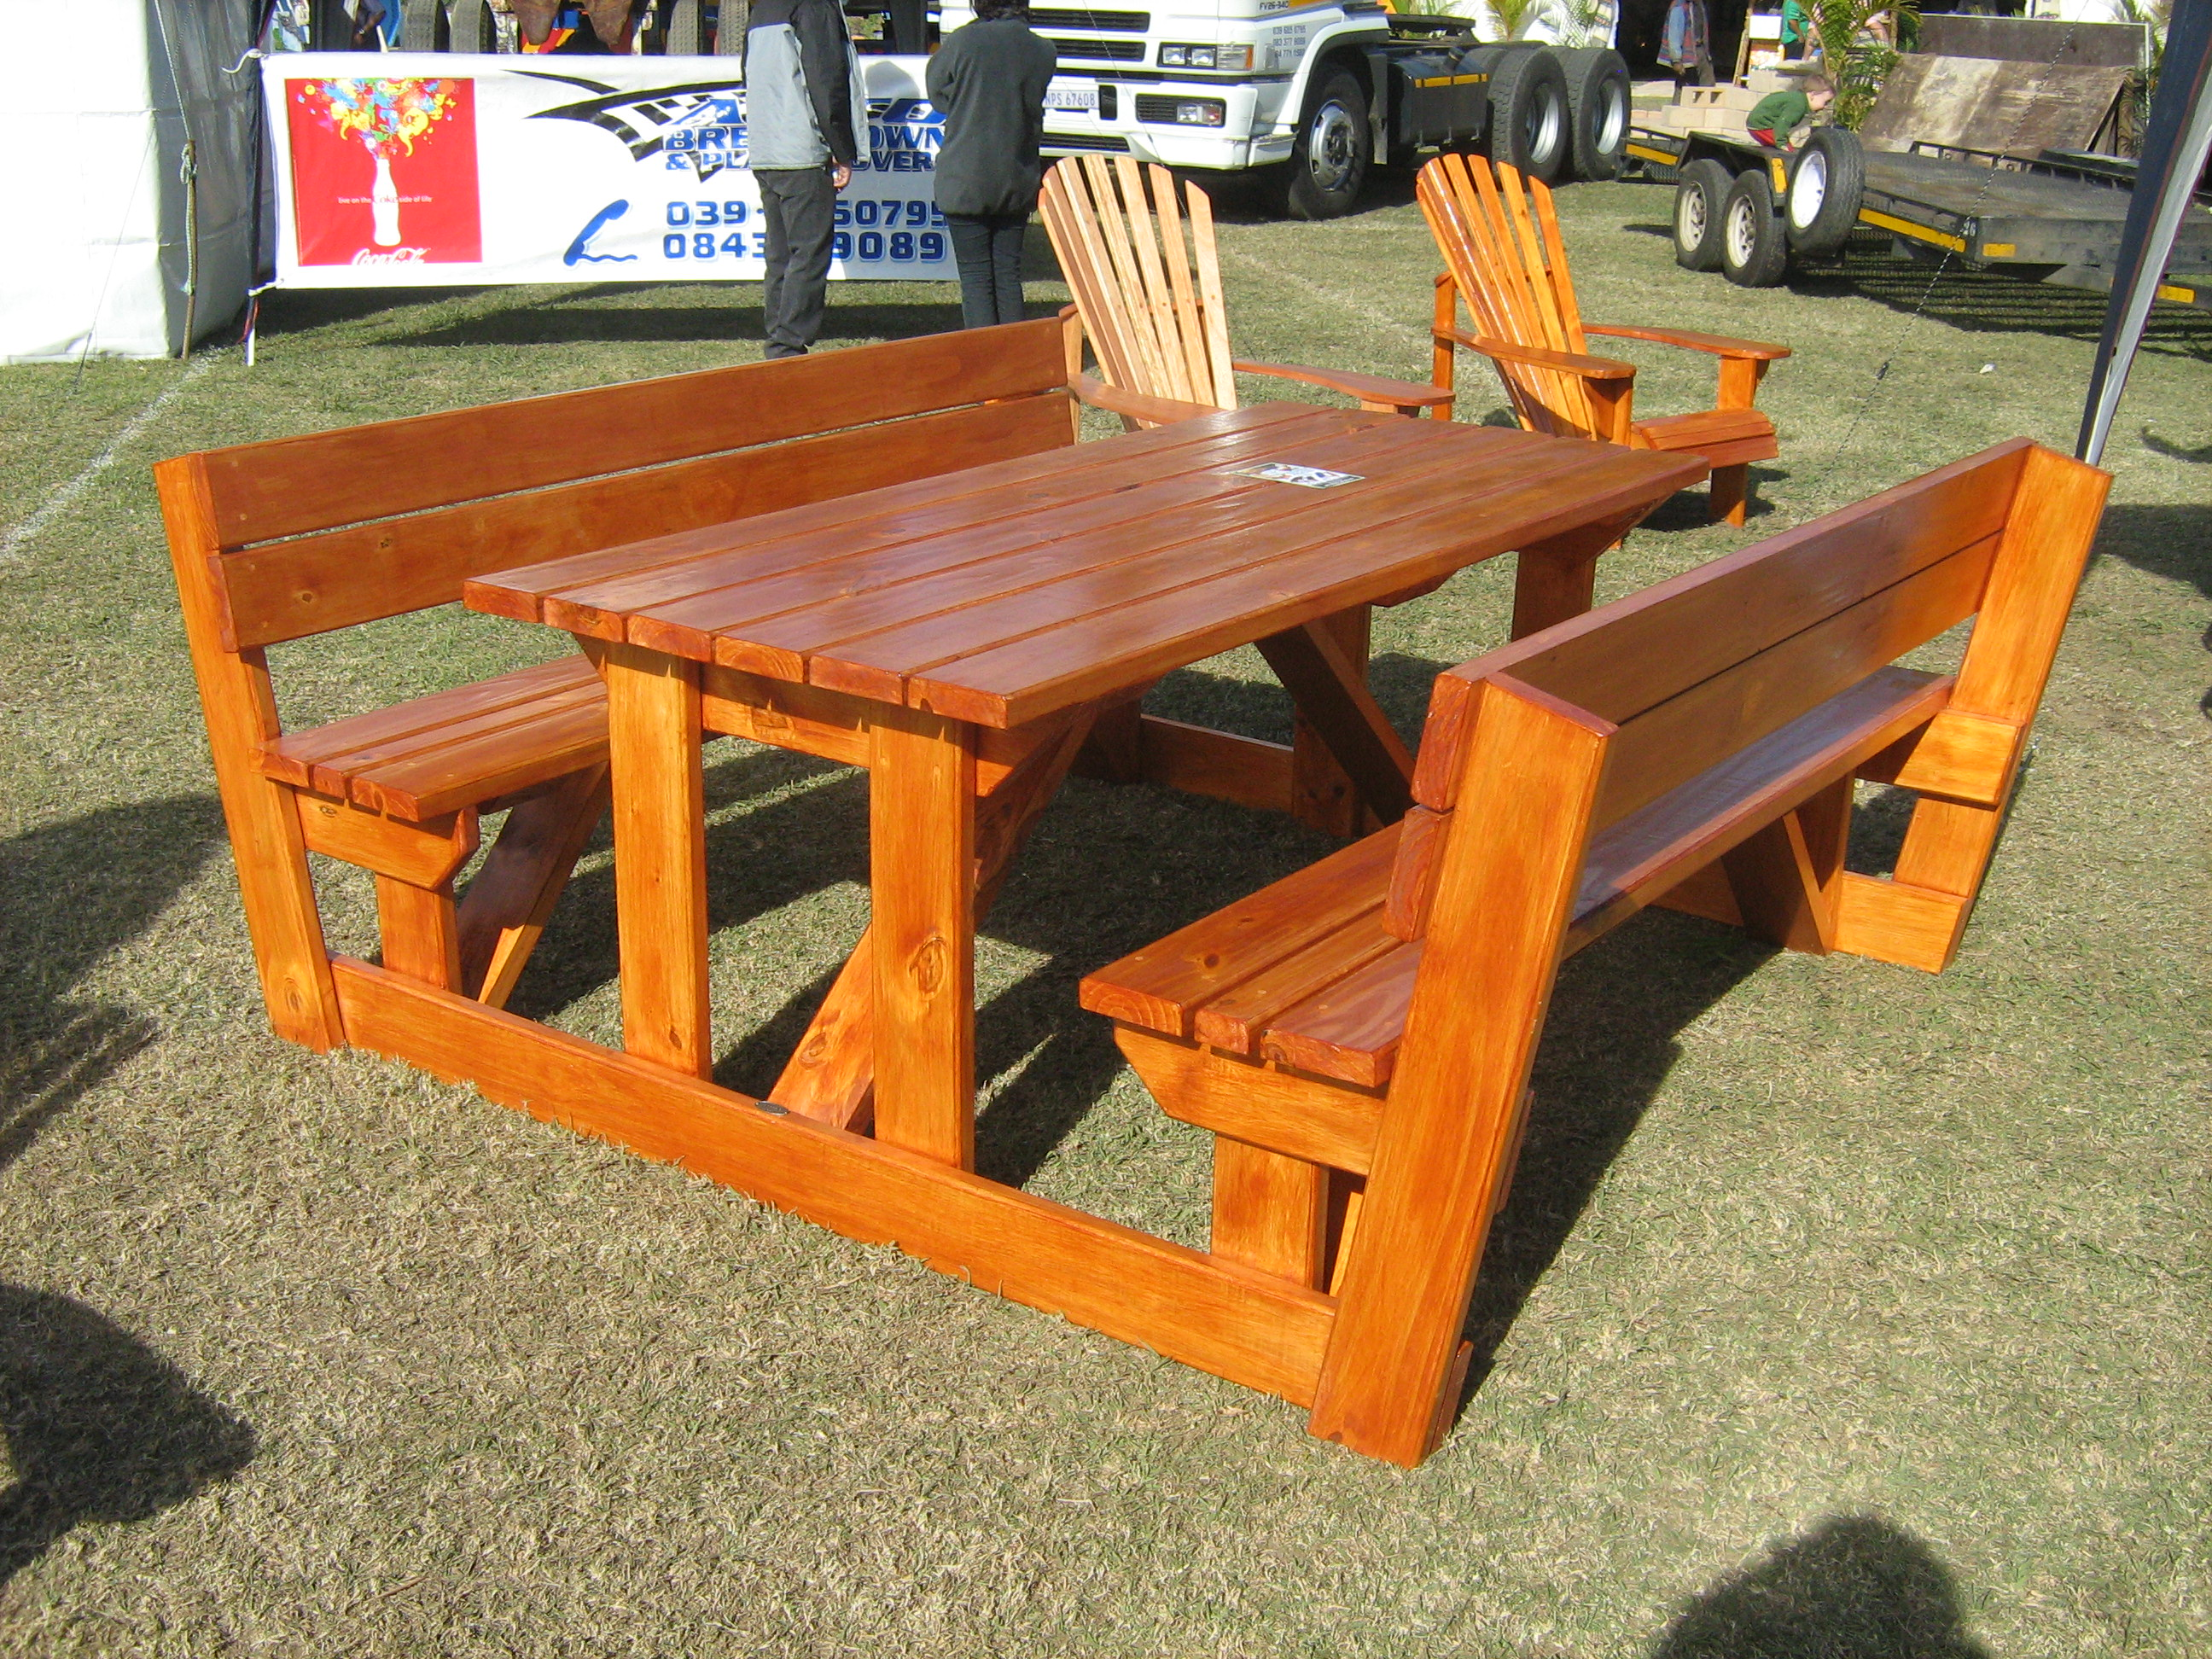 ... Furniture – Picnic Tables | The Wood Joint - Wooden Decks and Floors